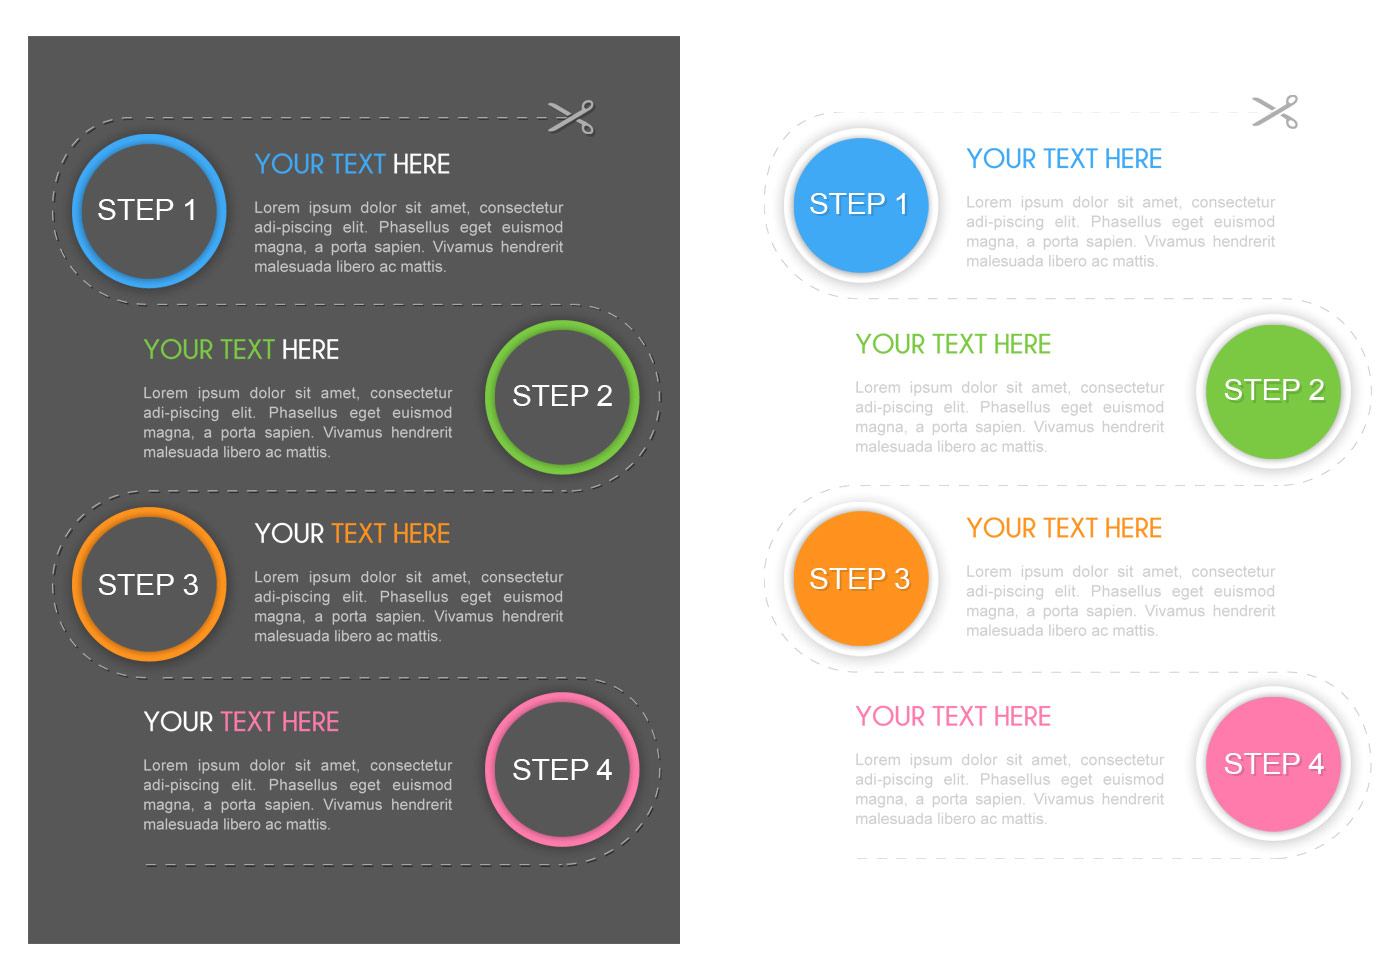 1 2 3 4 Steps Flyer PSD Template - Free Photoshop Brushes at Brusheezy!